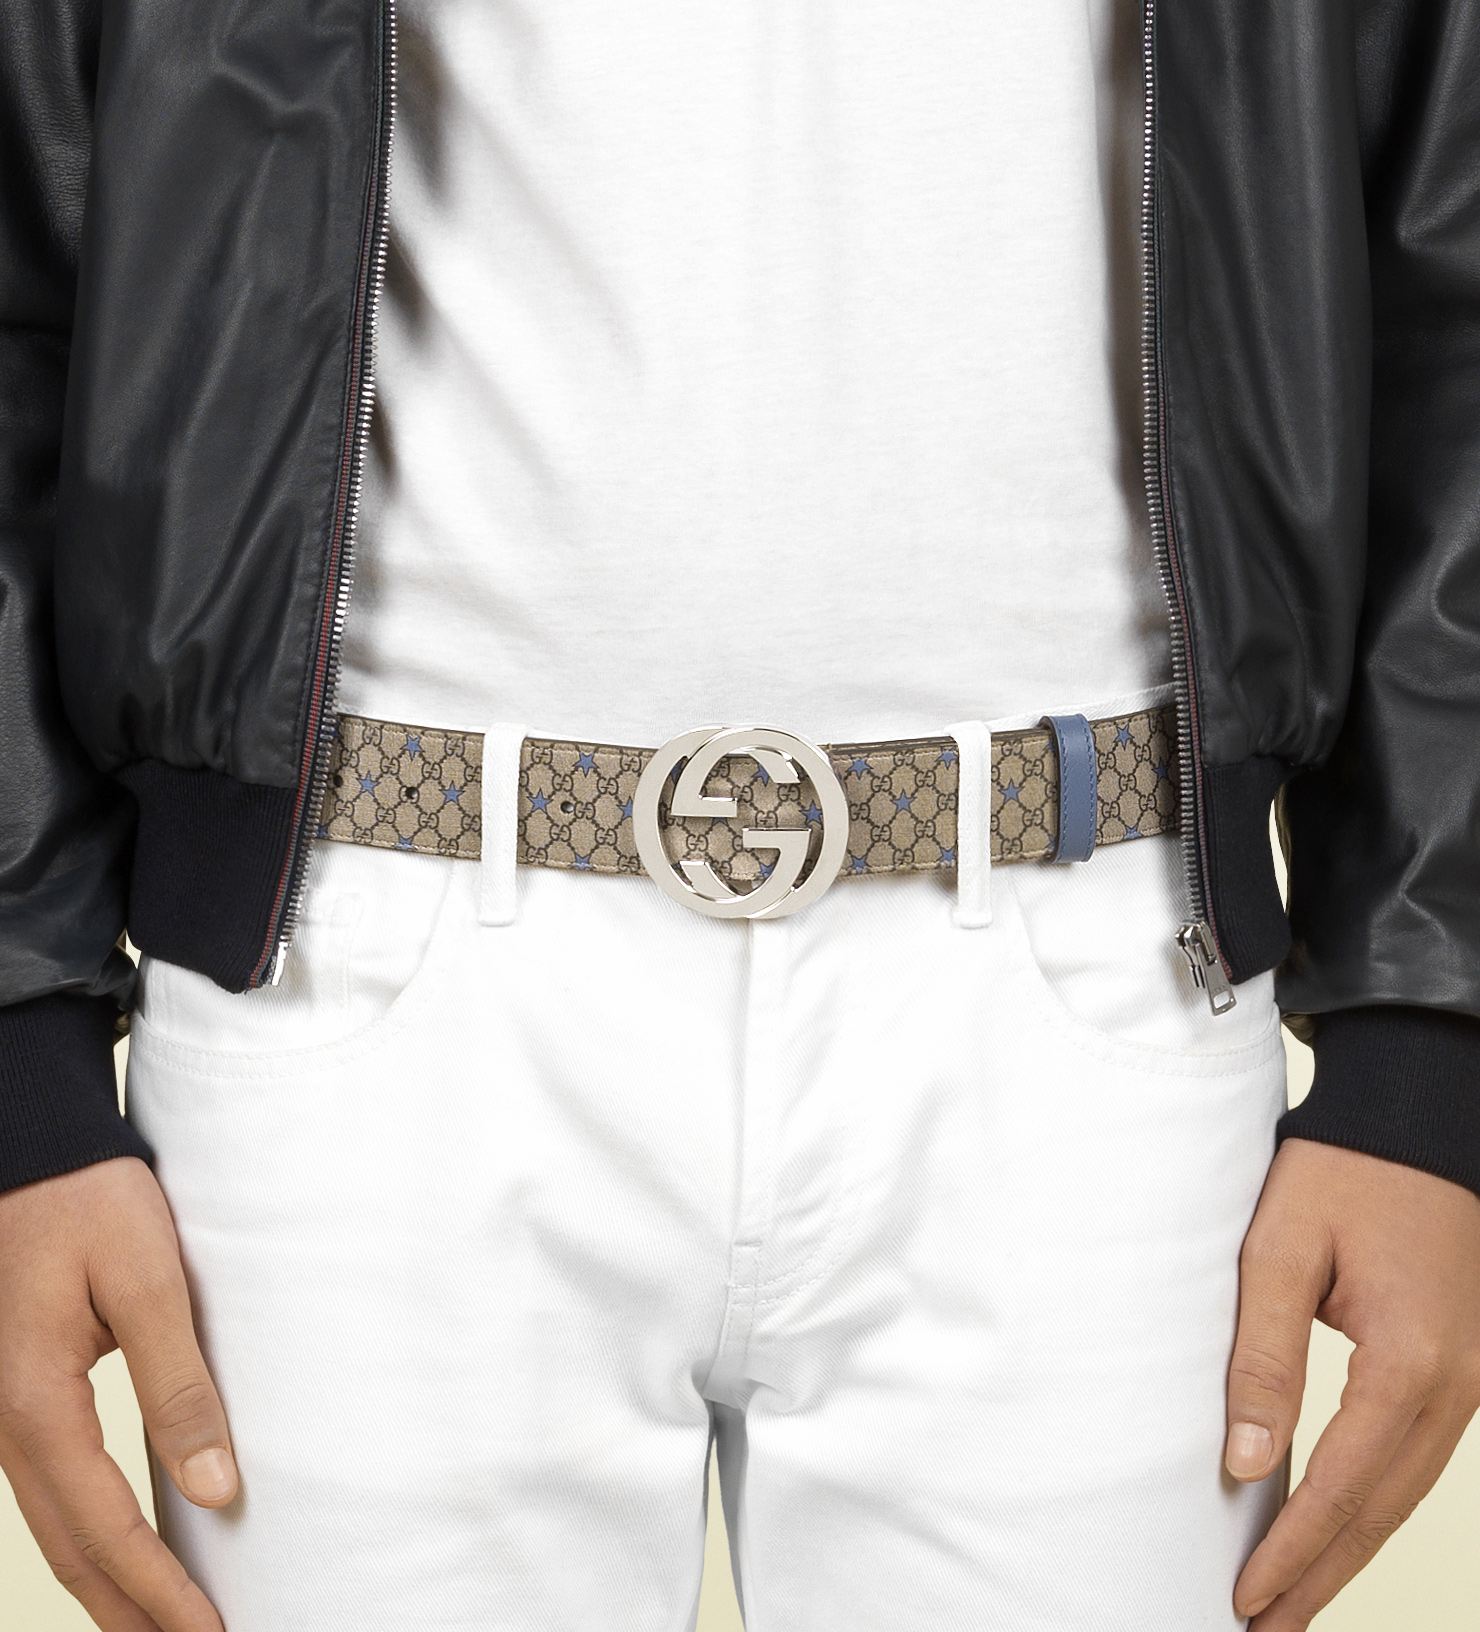 bea78c084 Gucci Gg Supreme Canvas Belt with Interlocking G Buckle in Natural ...